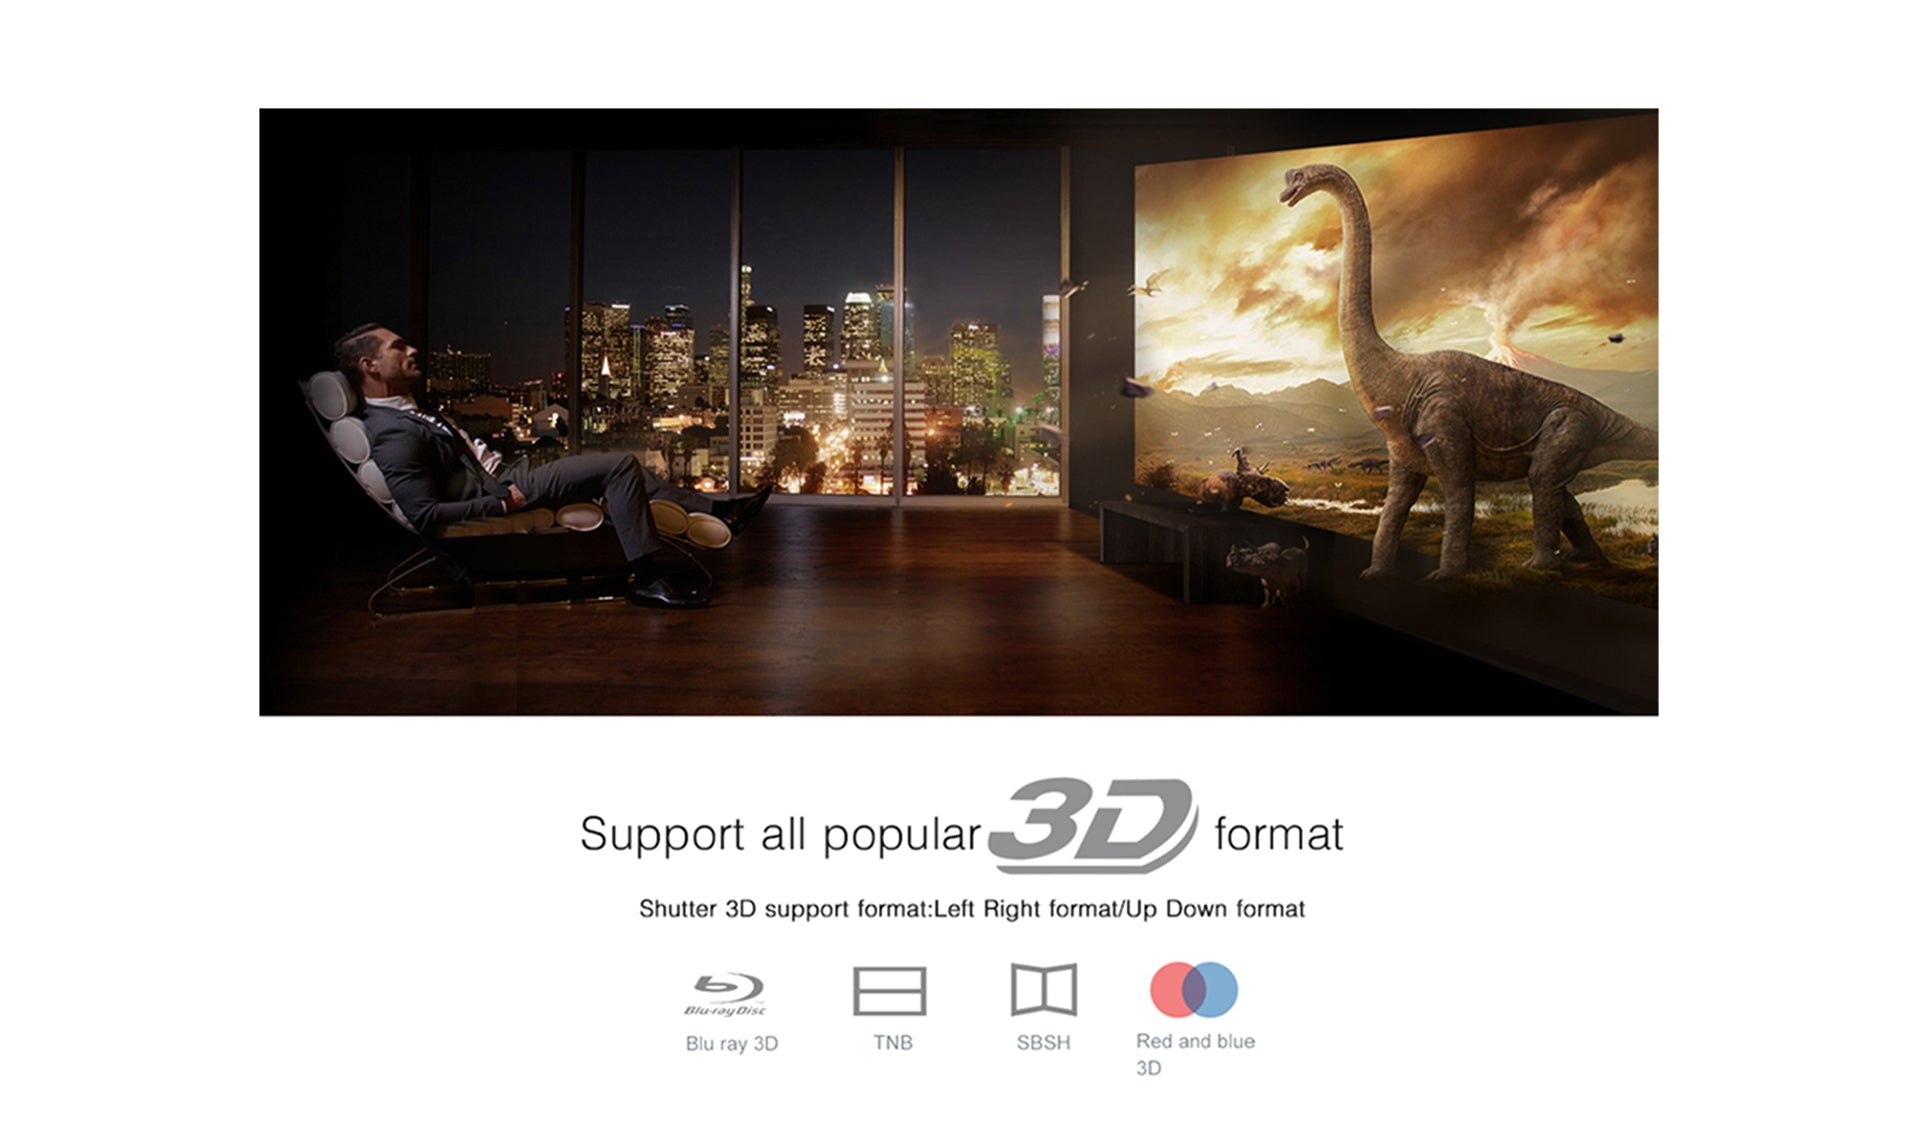 Toumei V5 3D Projector Features 02